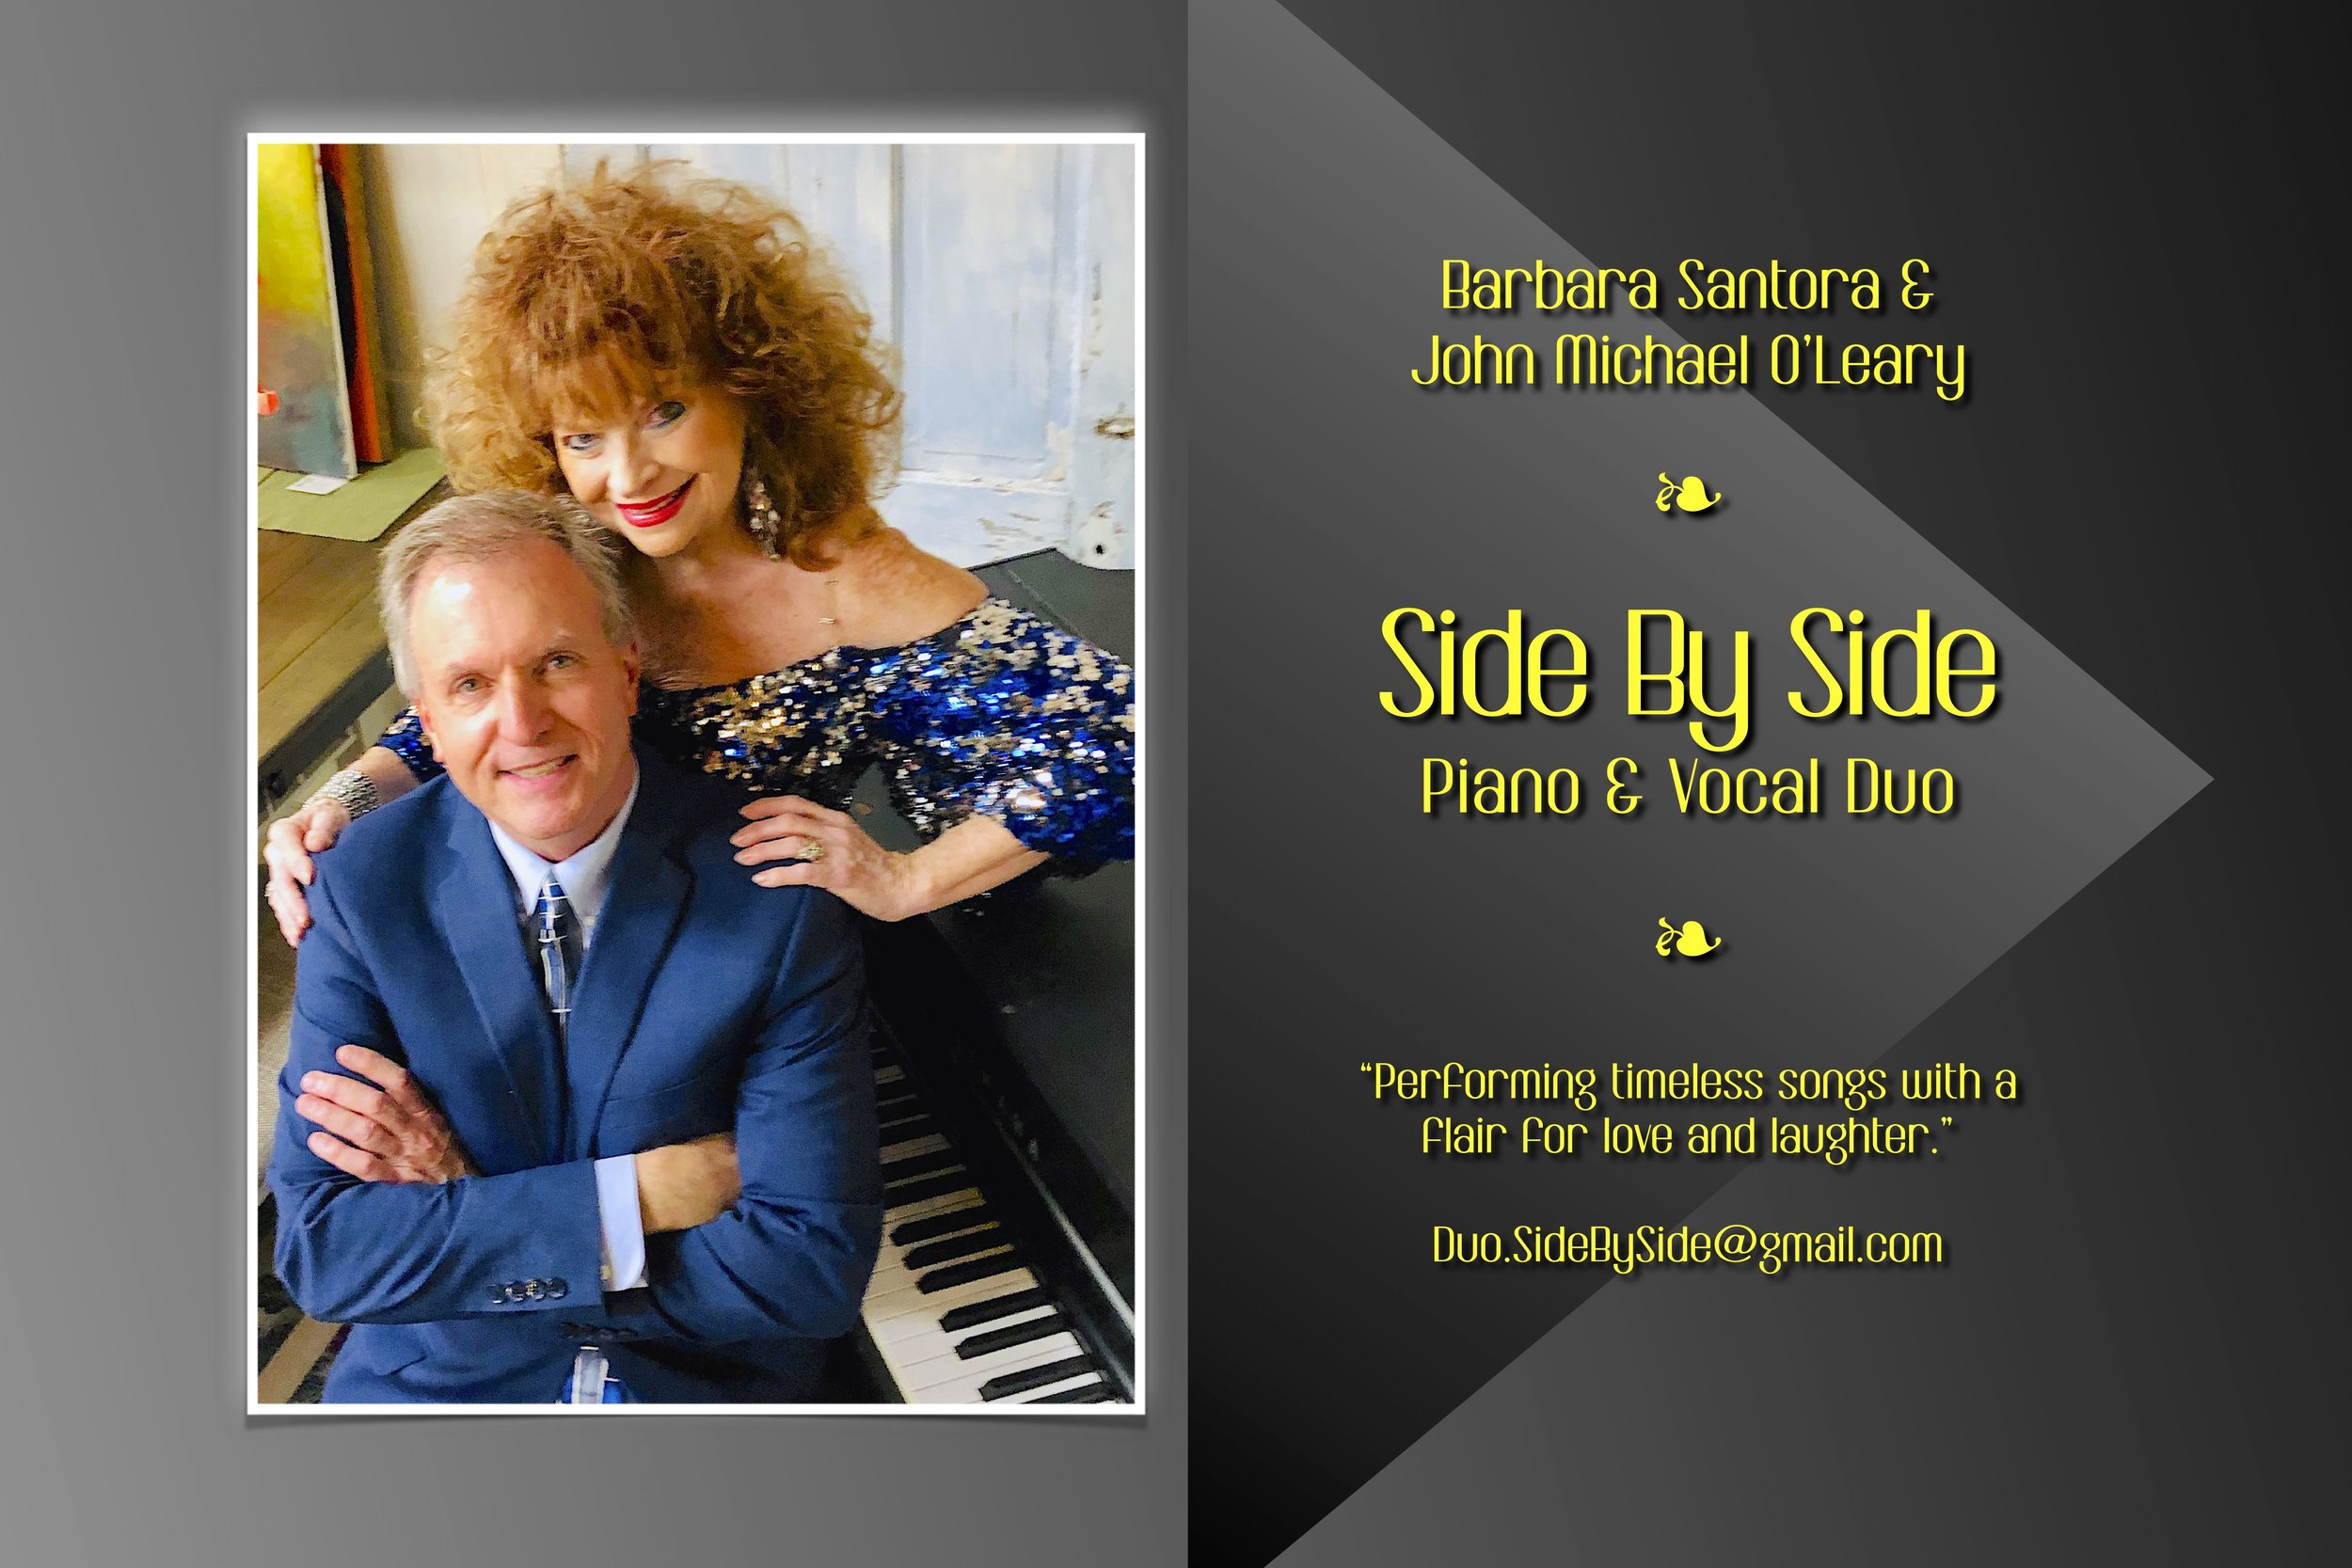 Side By Side Duo with Barbara Santora & John Michael O'Leary